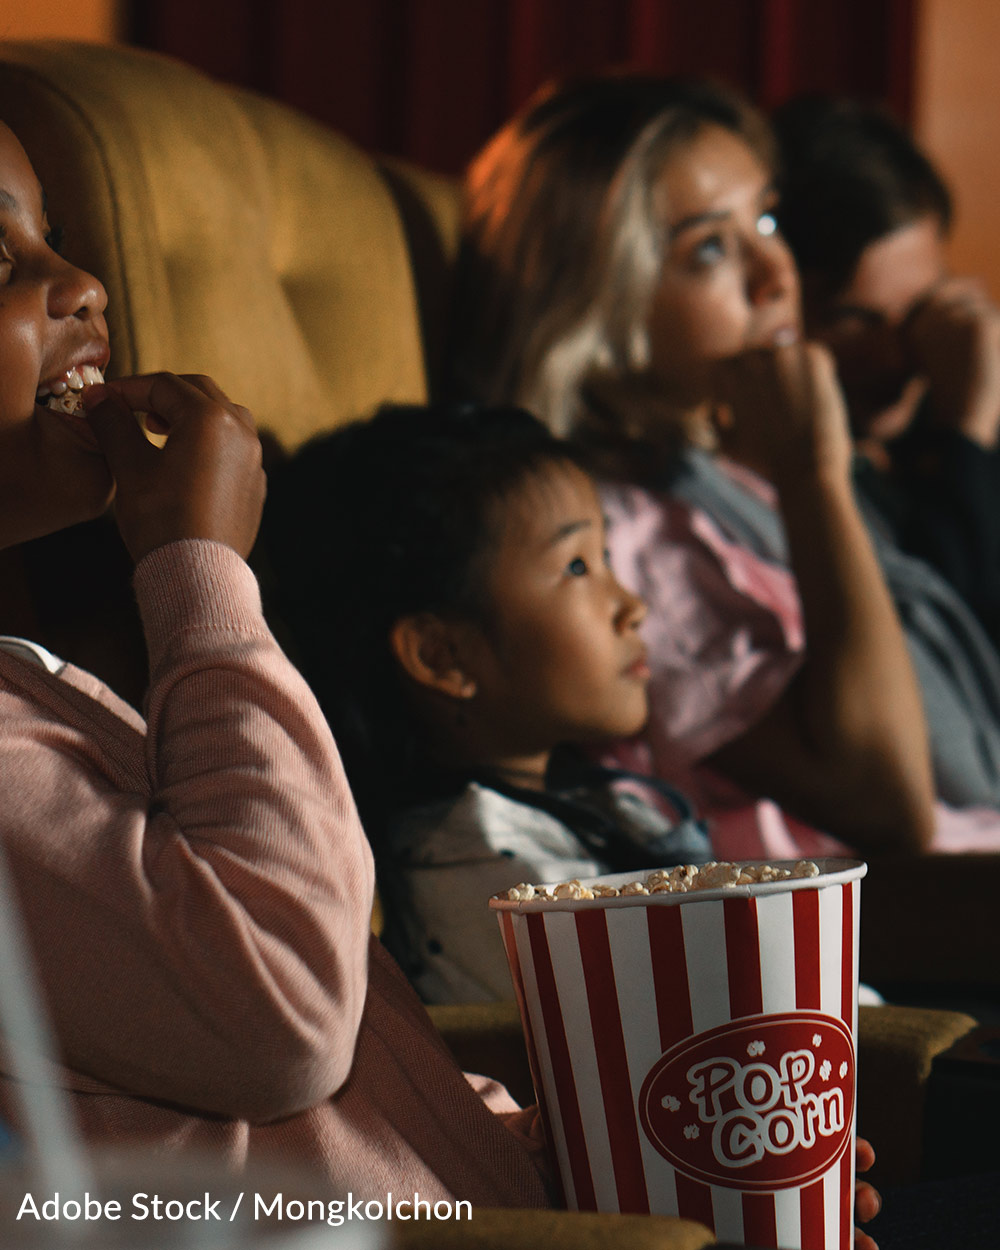 A visit to the movie theater can be a stressful experience for parents of children on the spectrum.